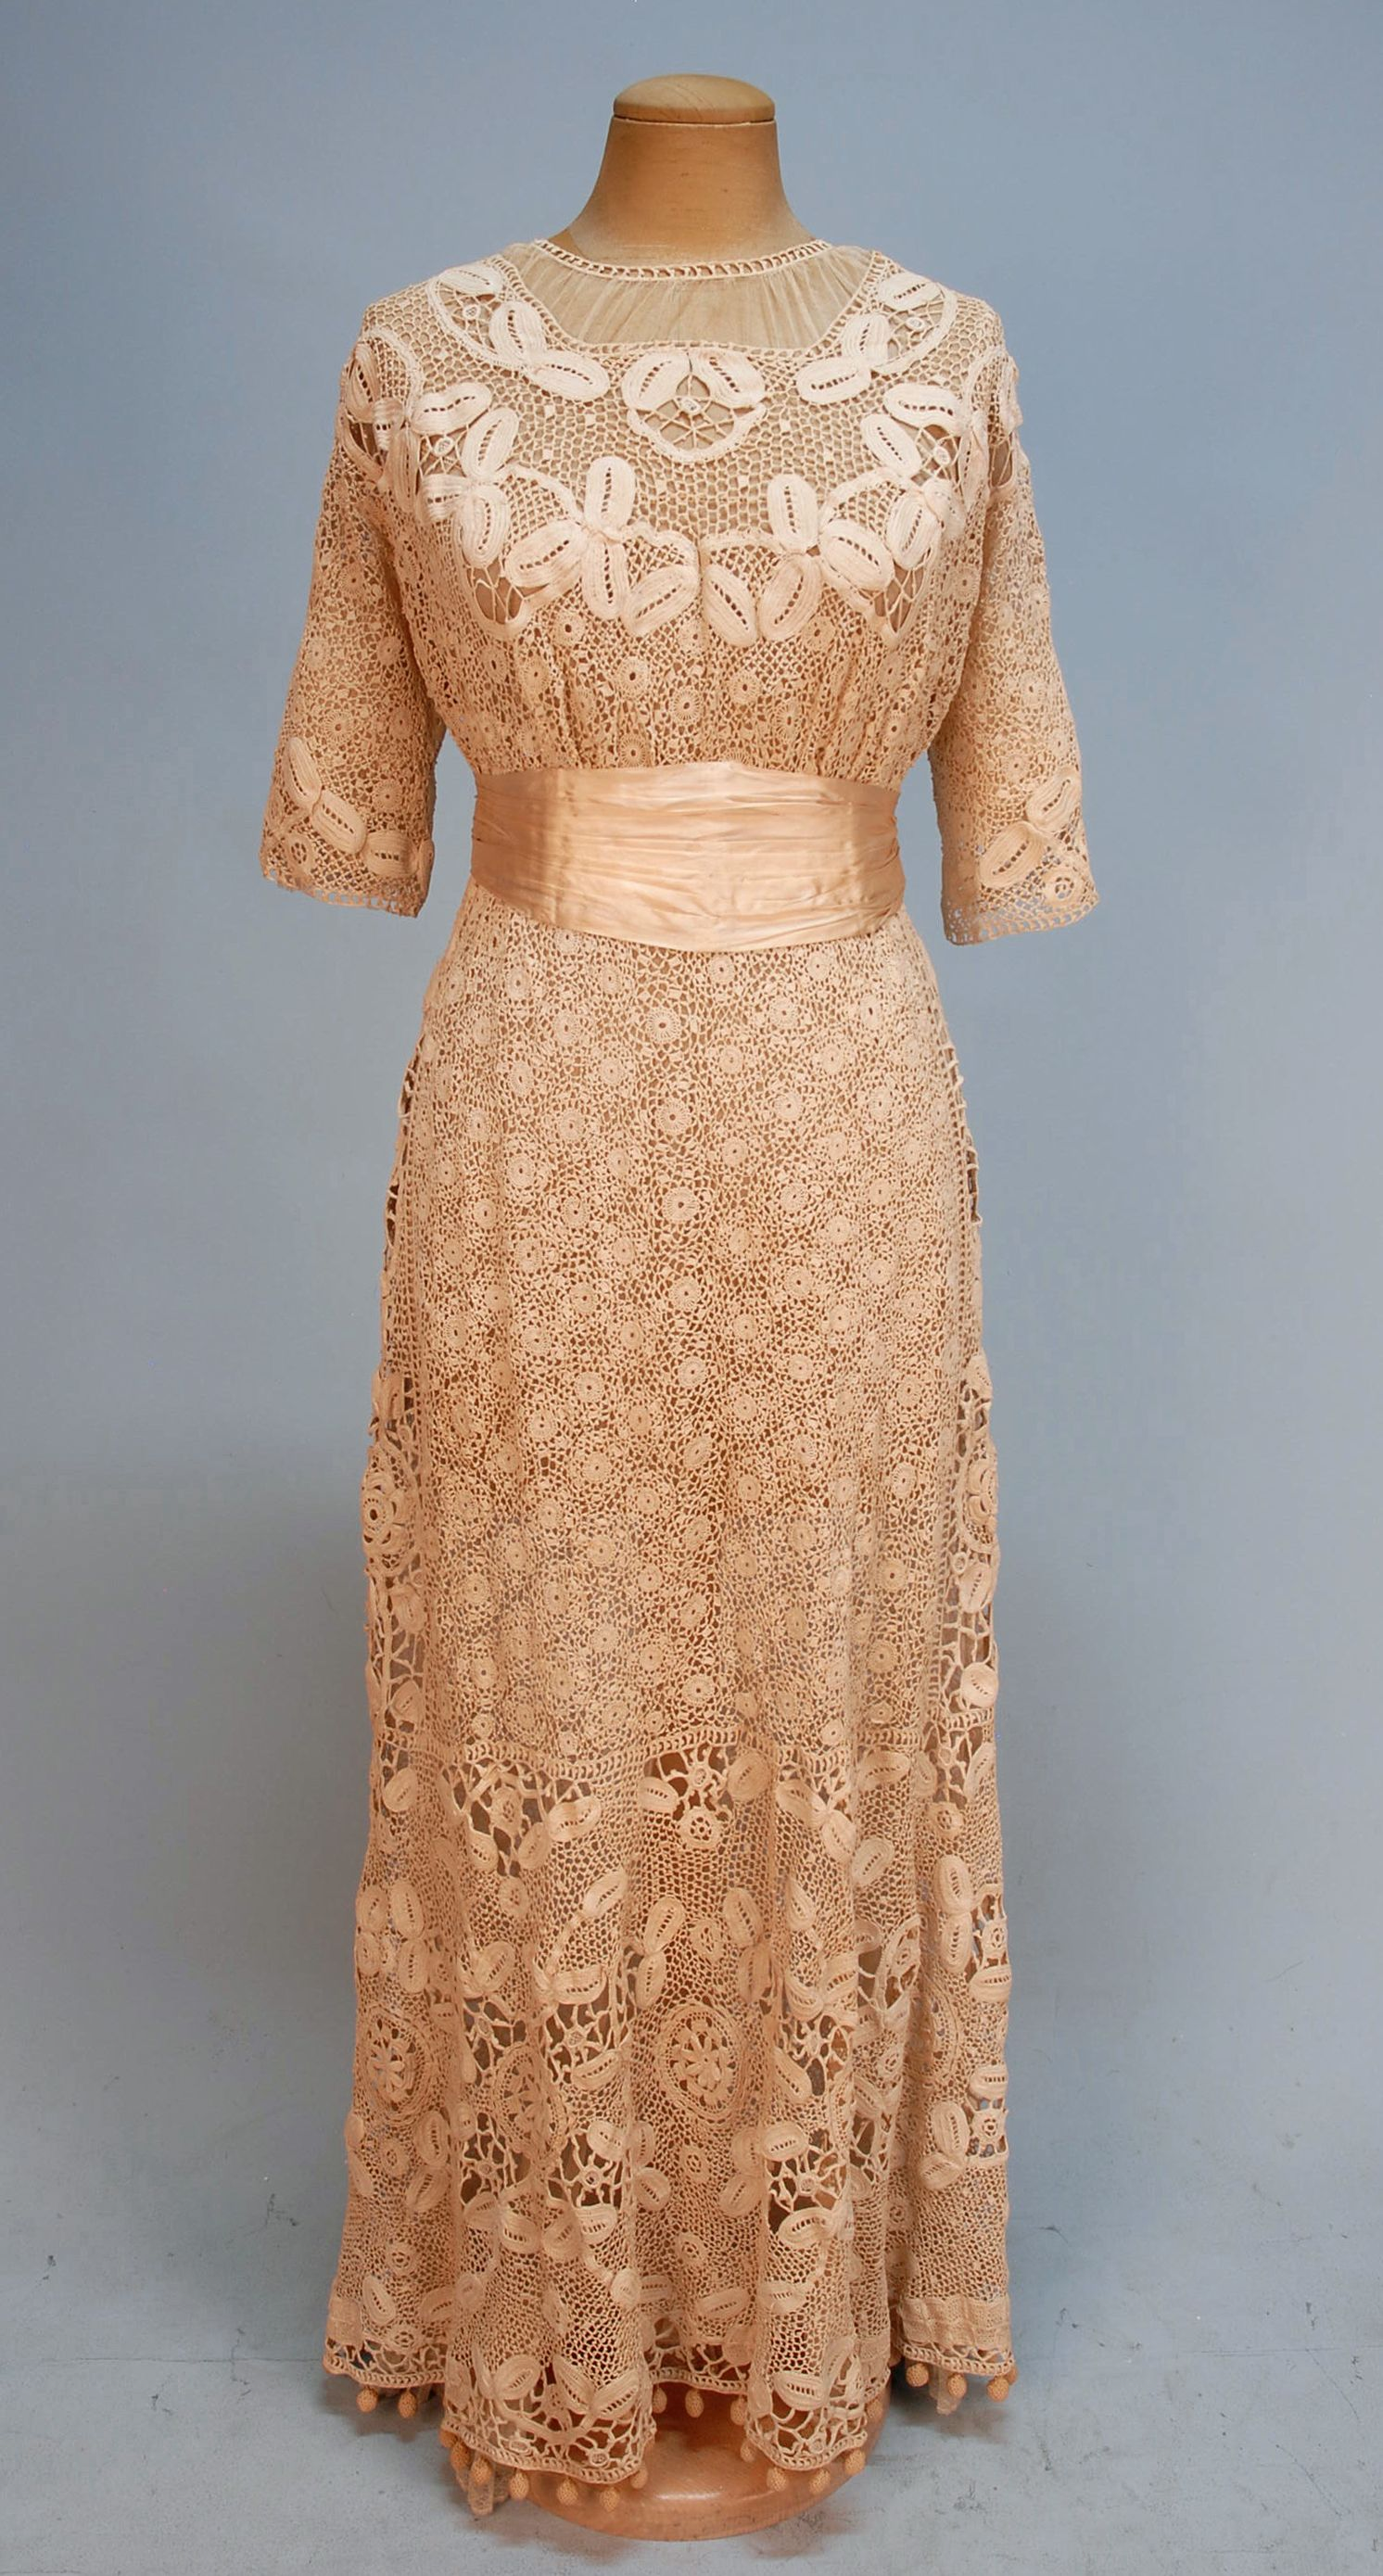 Crochet lace empire dress with satin skirt